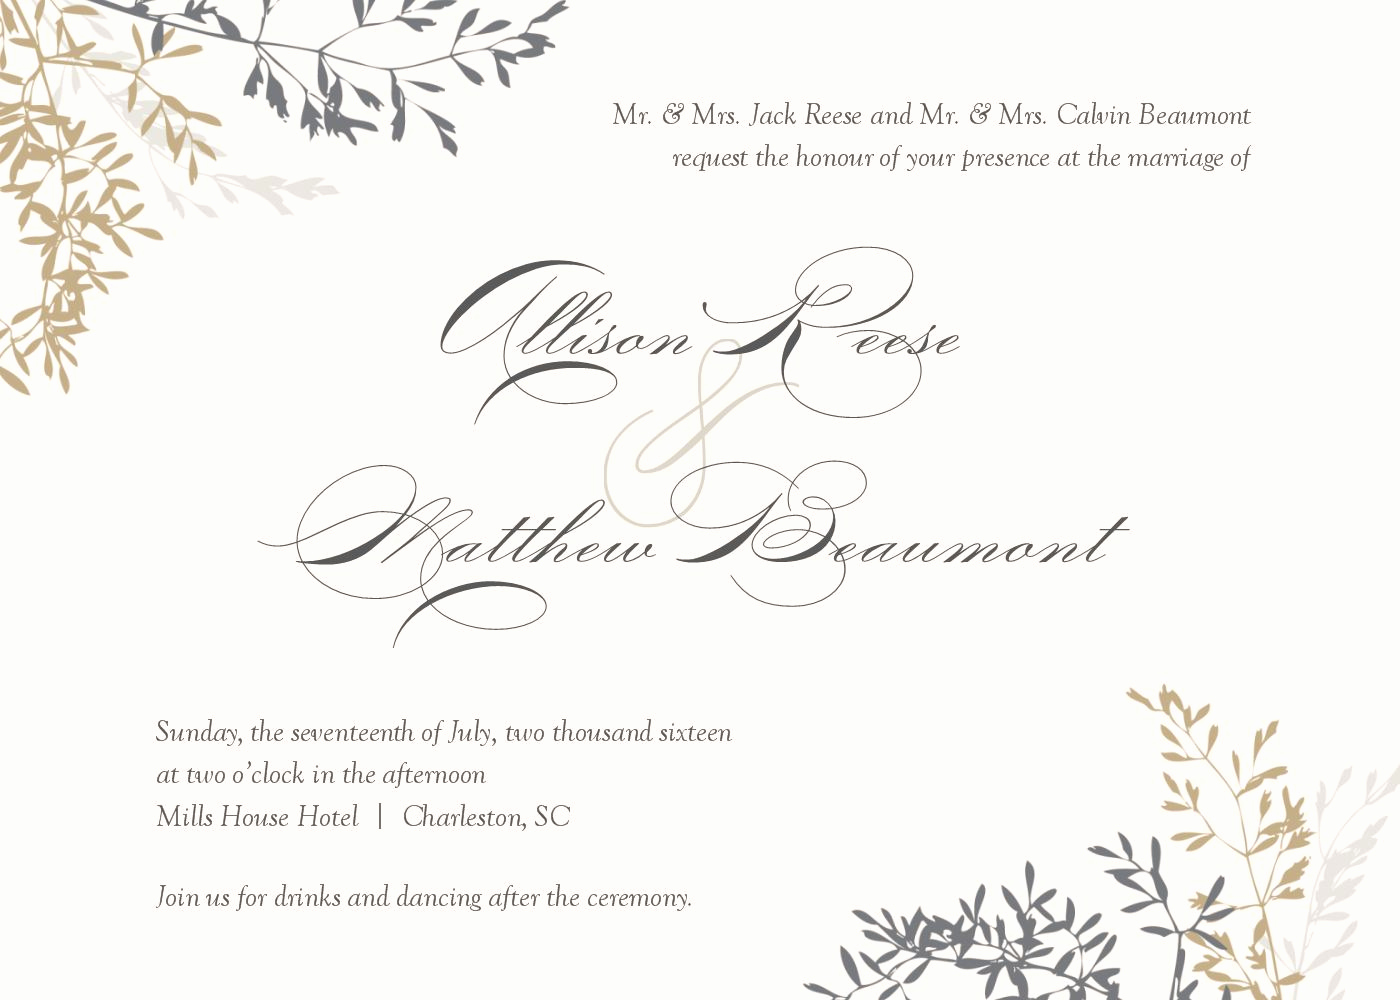 Free Wedding Invitation Templates Best Of Wedding Invitation Wedding Invitations Template Superb